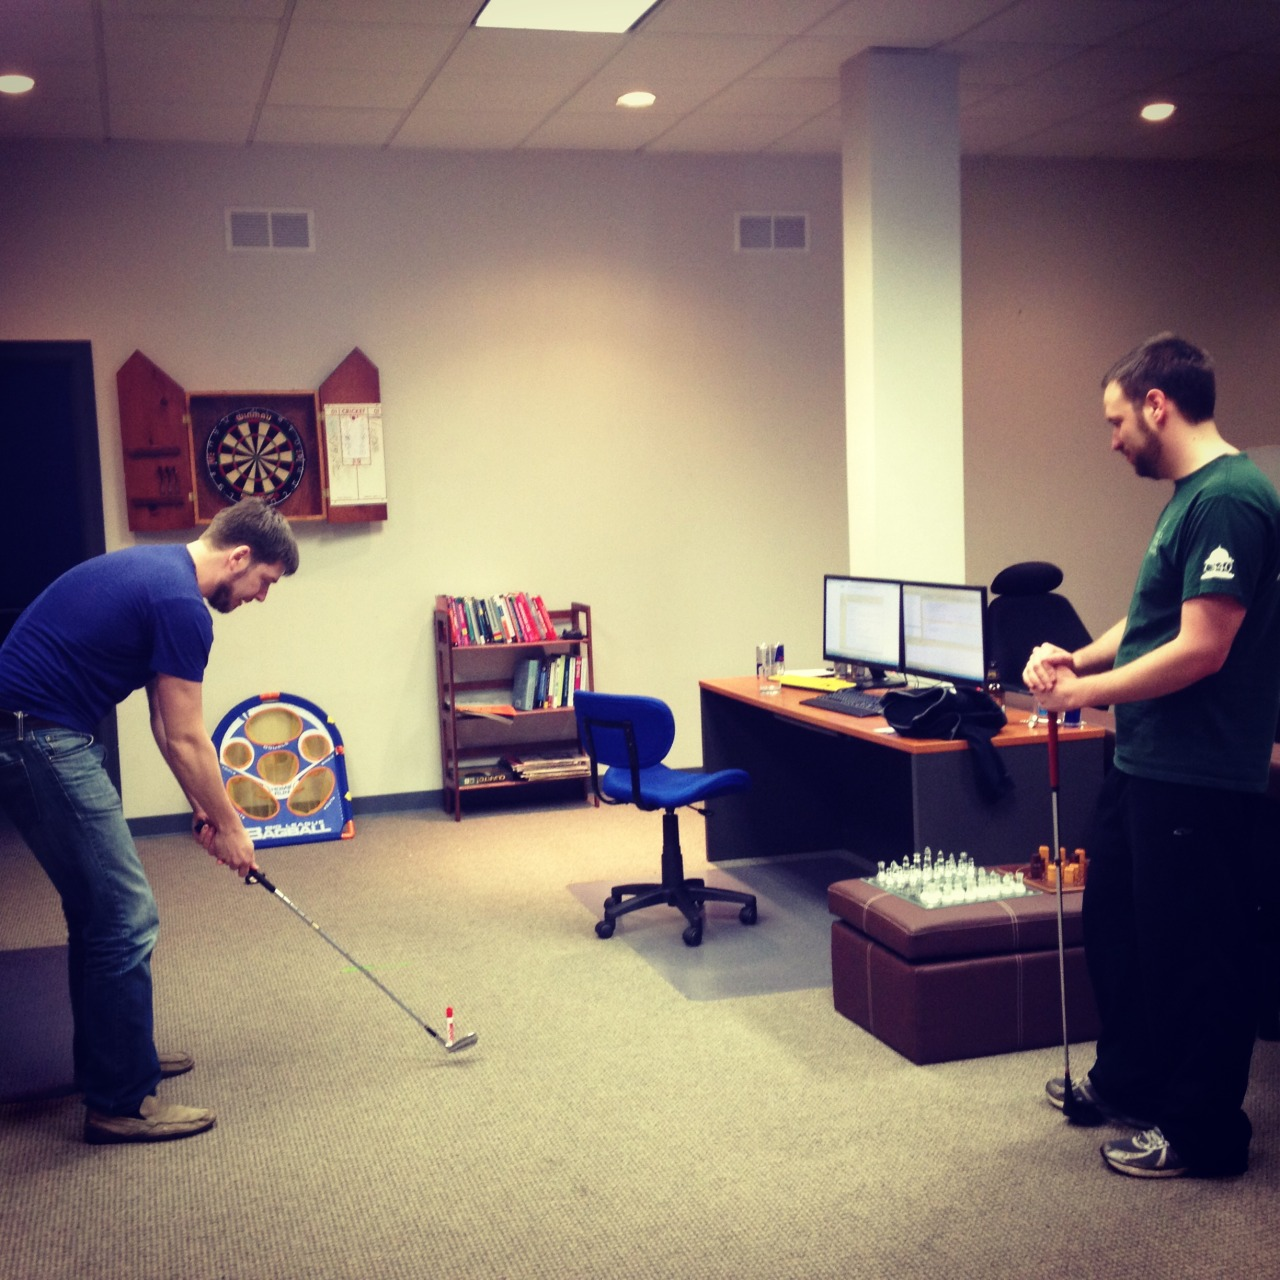 This is what we do at the office on Friday, Ian and Chris were trying to find out what can be substituted for a golf ball and trying to hit around the office. But once I got a hold of a golf club, everybody got really scared.